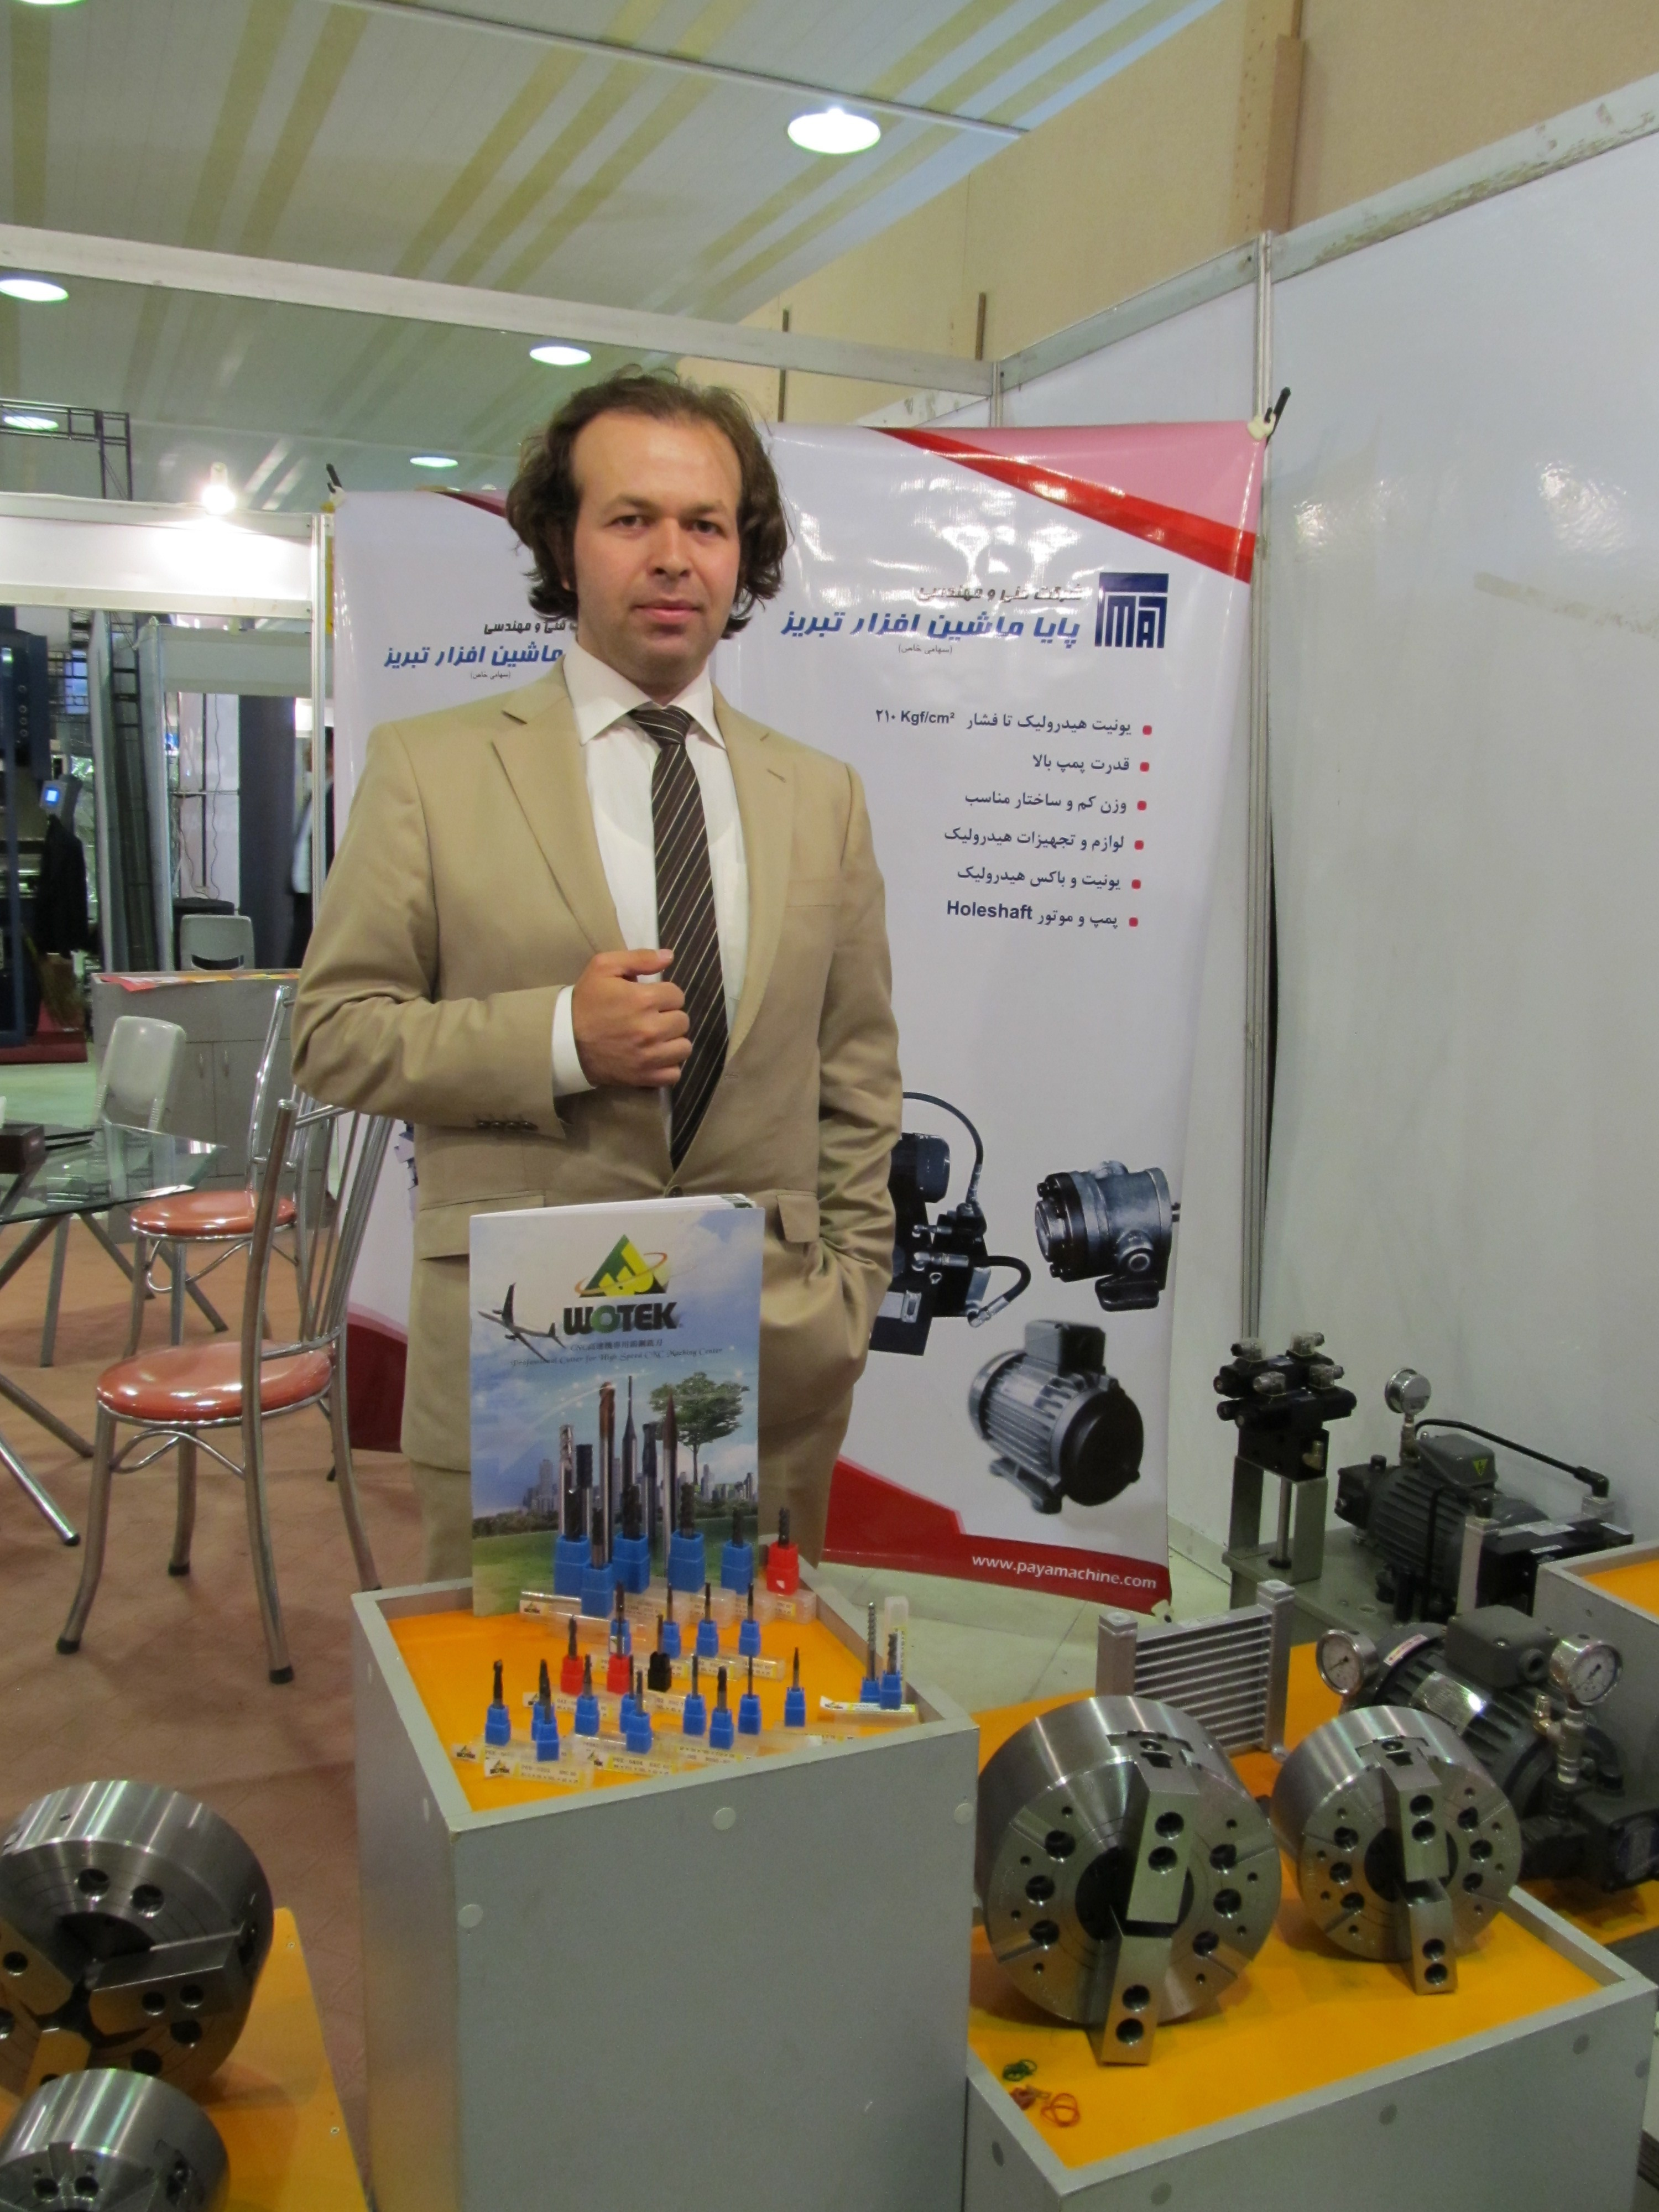 The 3 rd International Exhibition of Machine Tools, Industrial Automation & Instrumentation of Iran- Tabriz